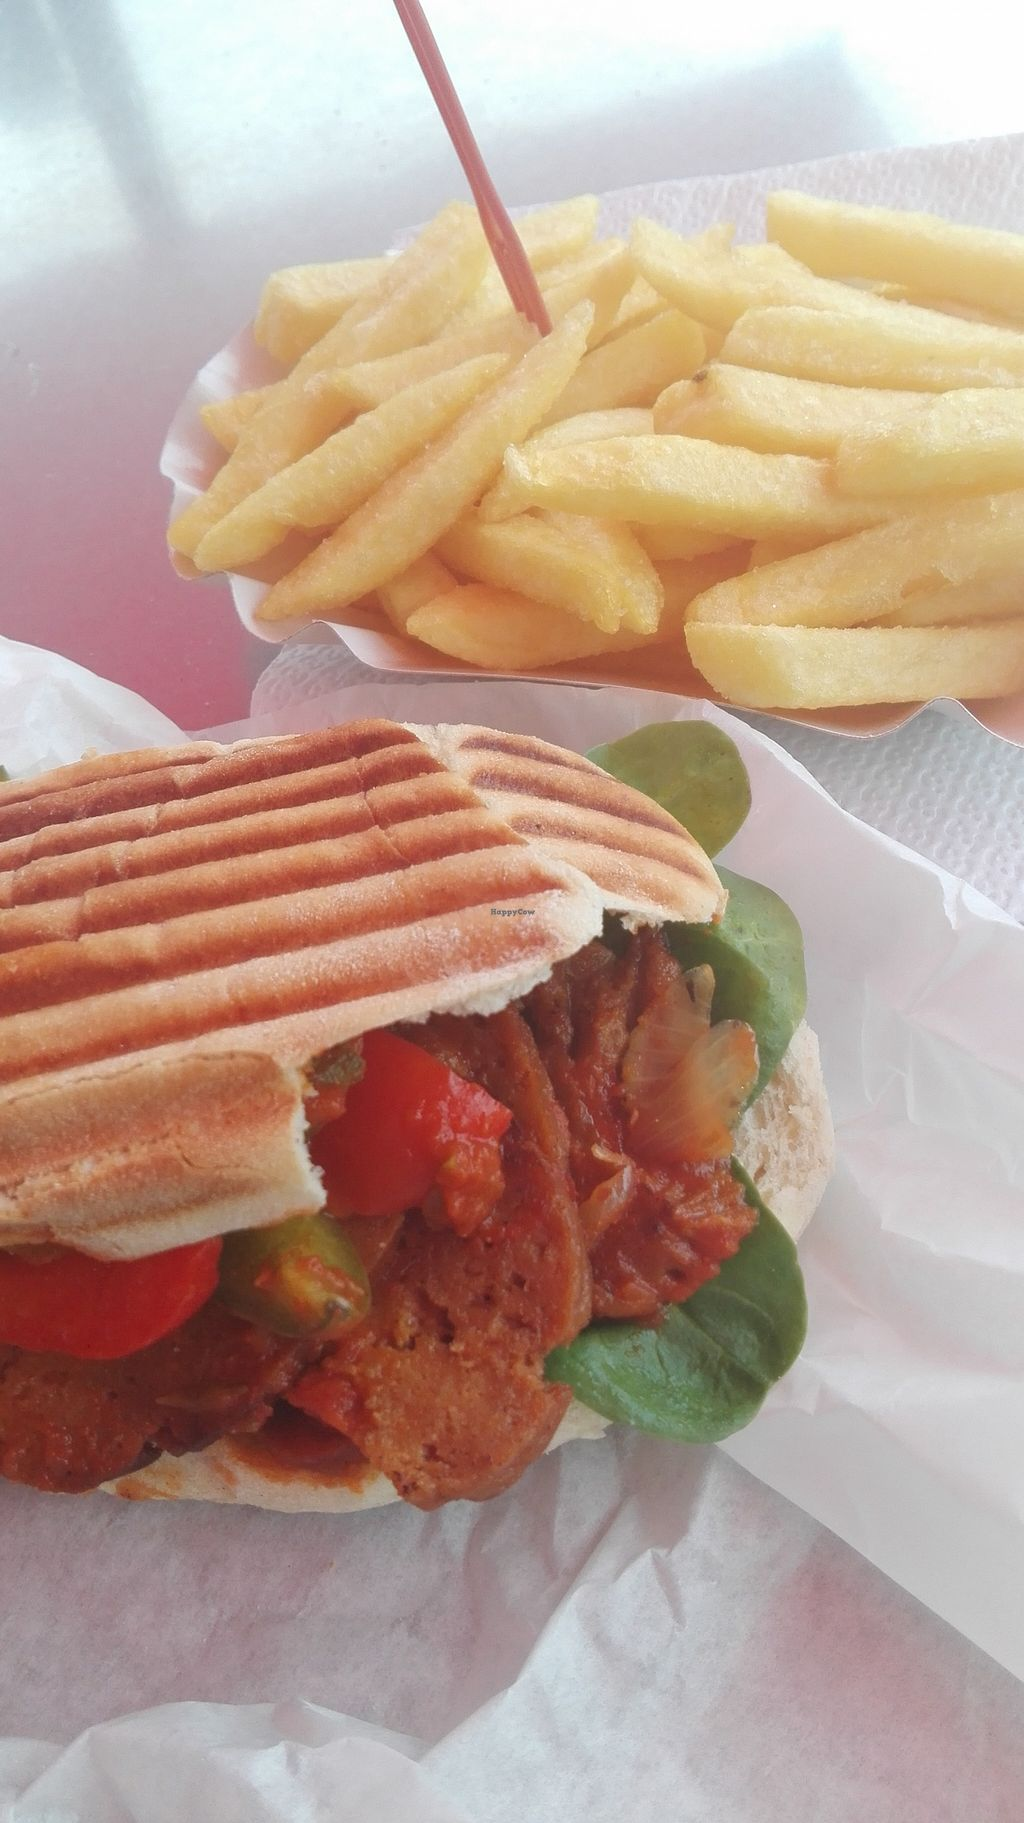 """Photo of strEats Vegan Food Truck  by <a href=""""/members/profile/FlorFrutal"""">FlorFrutal</a> <br/>Seitan sandwich. I bought the fries in another different truck <br/> October 30, 2015  - <a href='/contact/abuse/image/55725/123225'>Report</a>"""